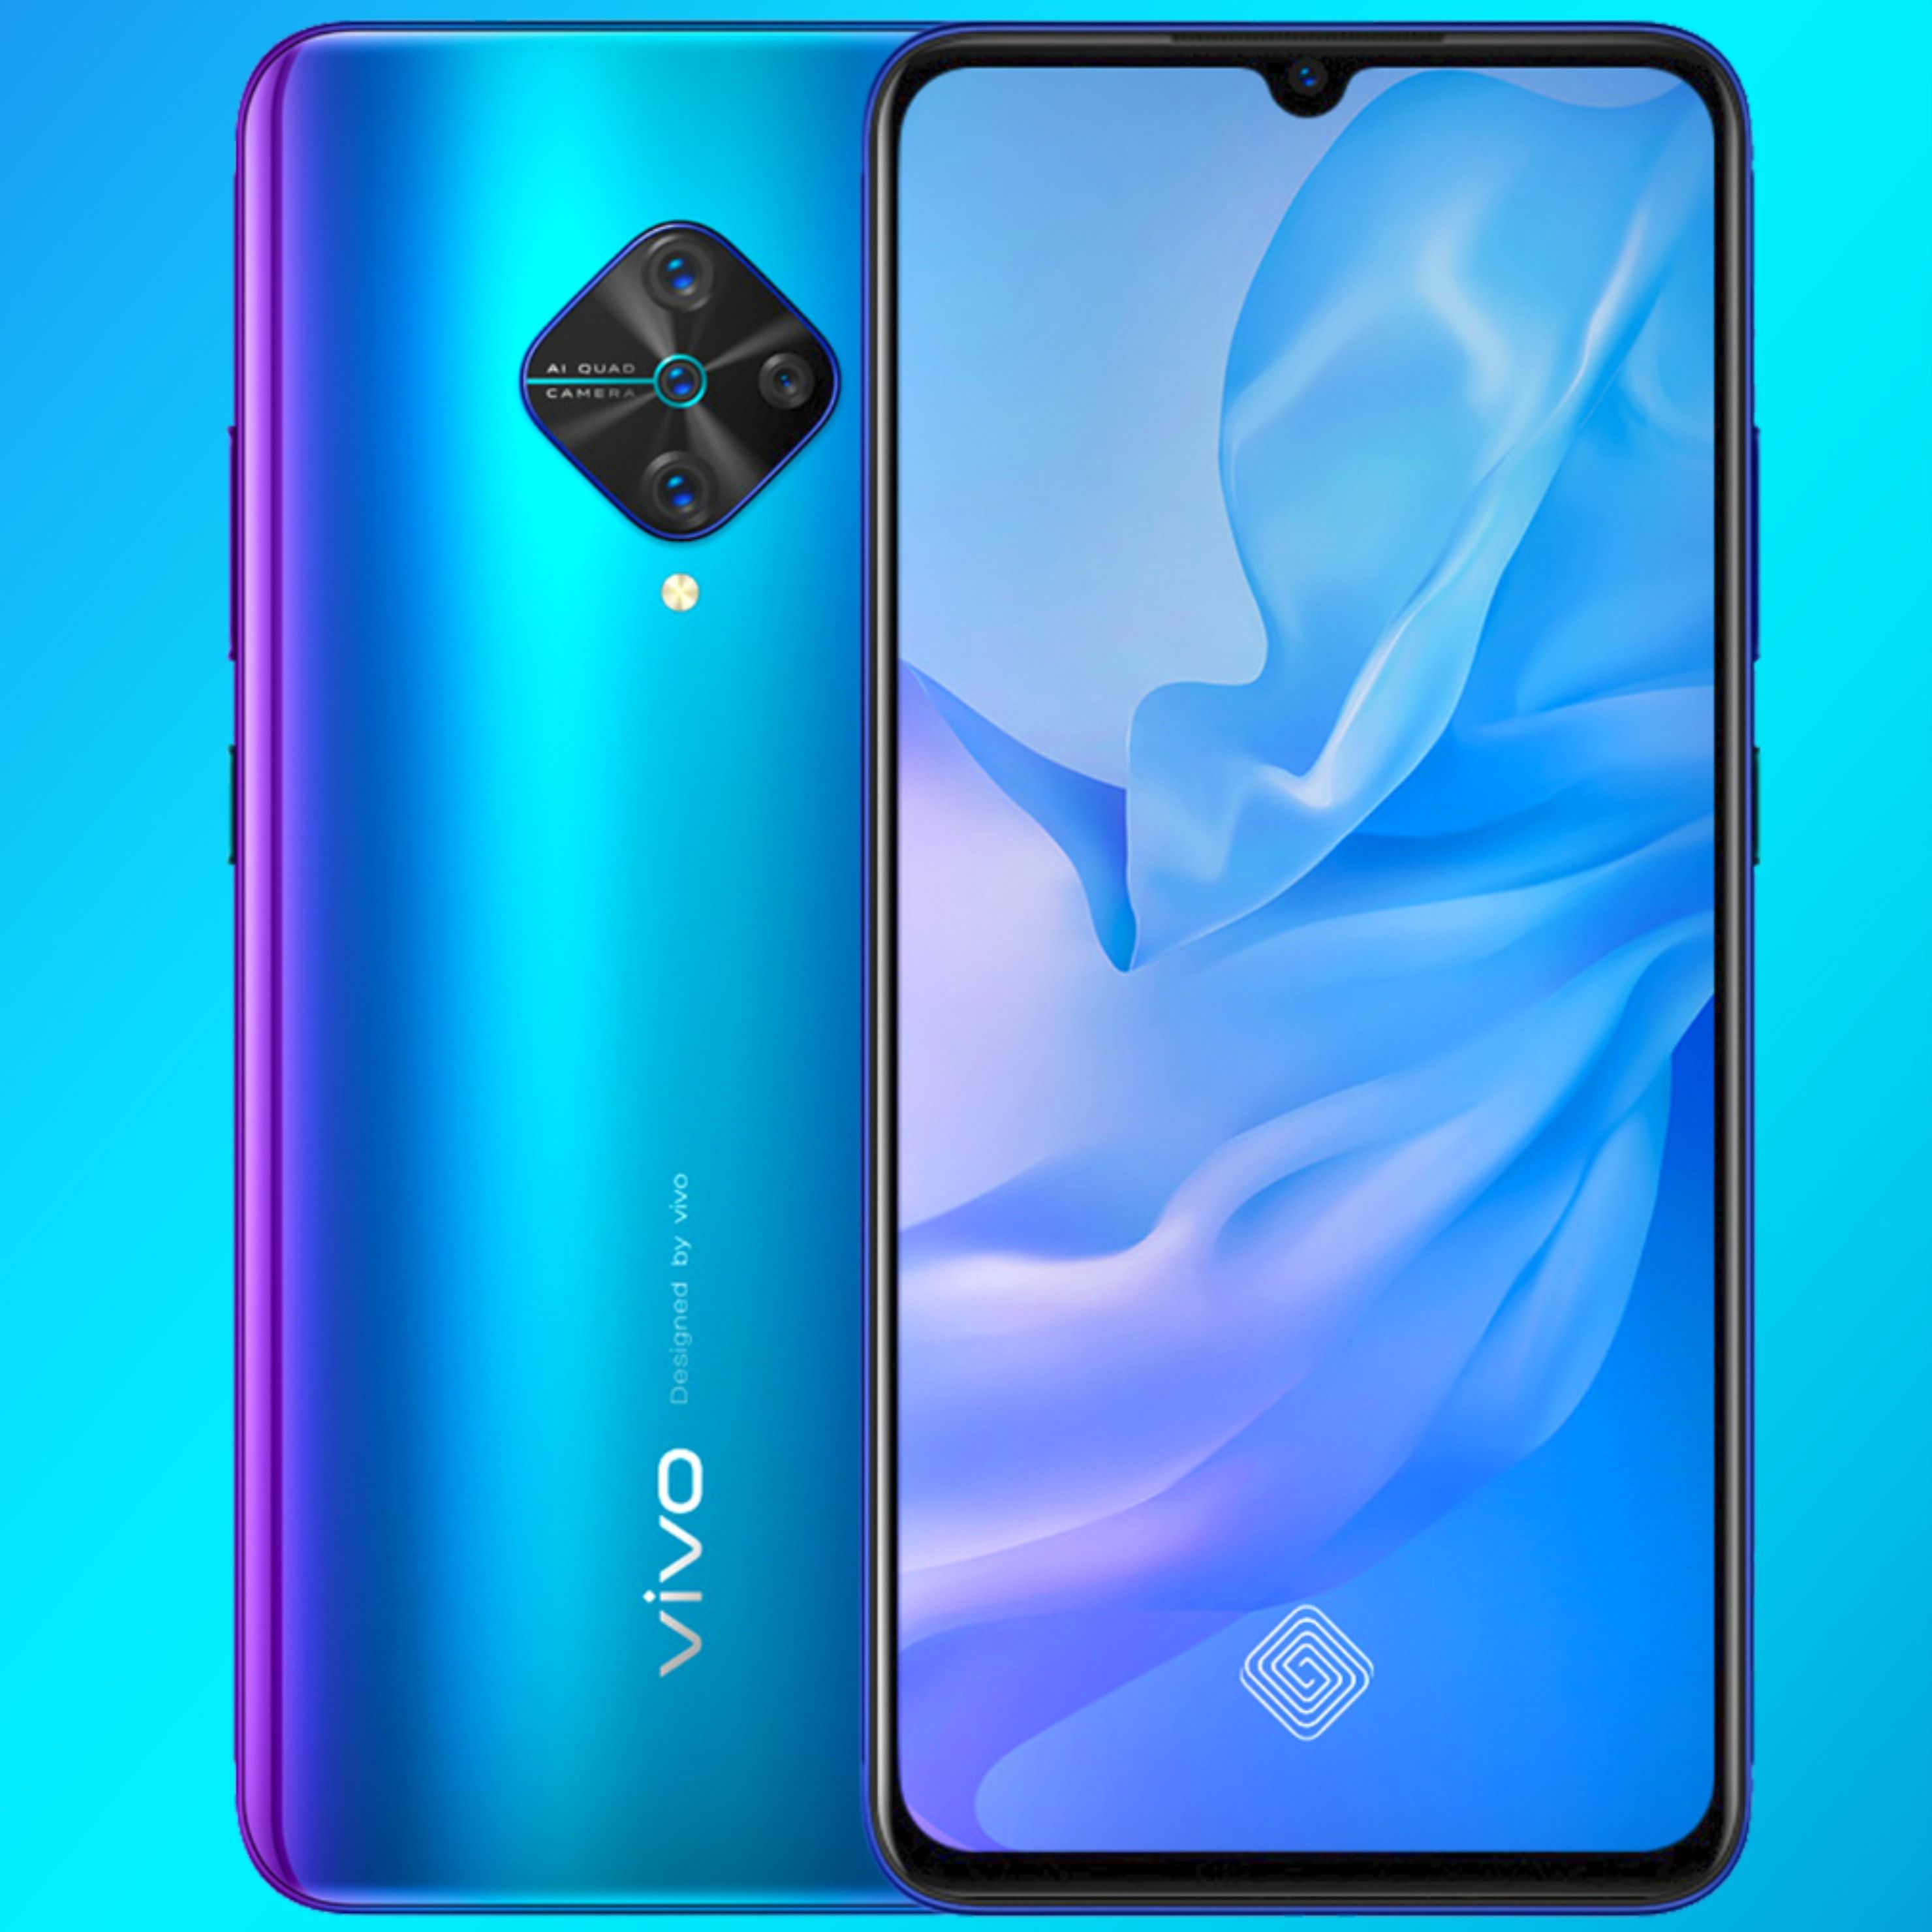 Want more Information of Vivo S1 Pro? Then You are in the